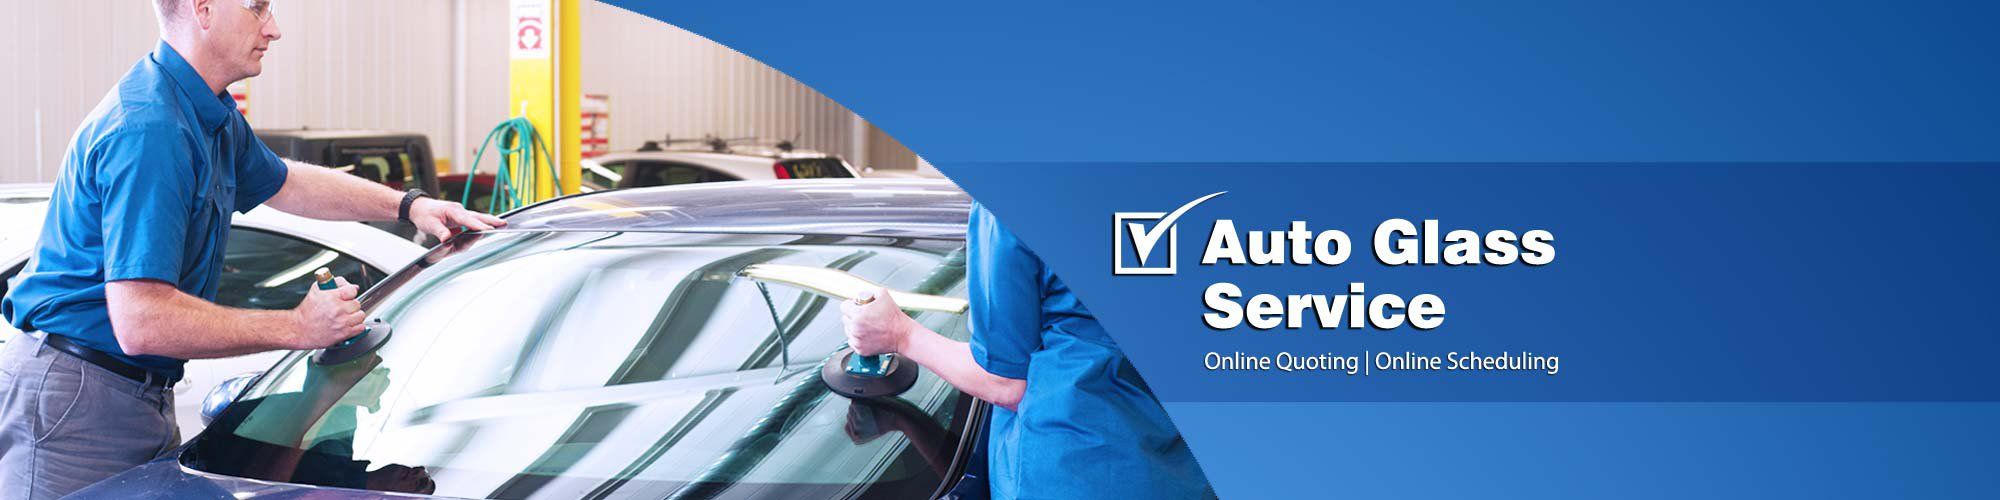 Auto Glass Quote Amazing Collision Repair  Auto Body  Auto Glass  Gerber Collision & Glass